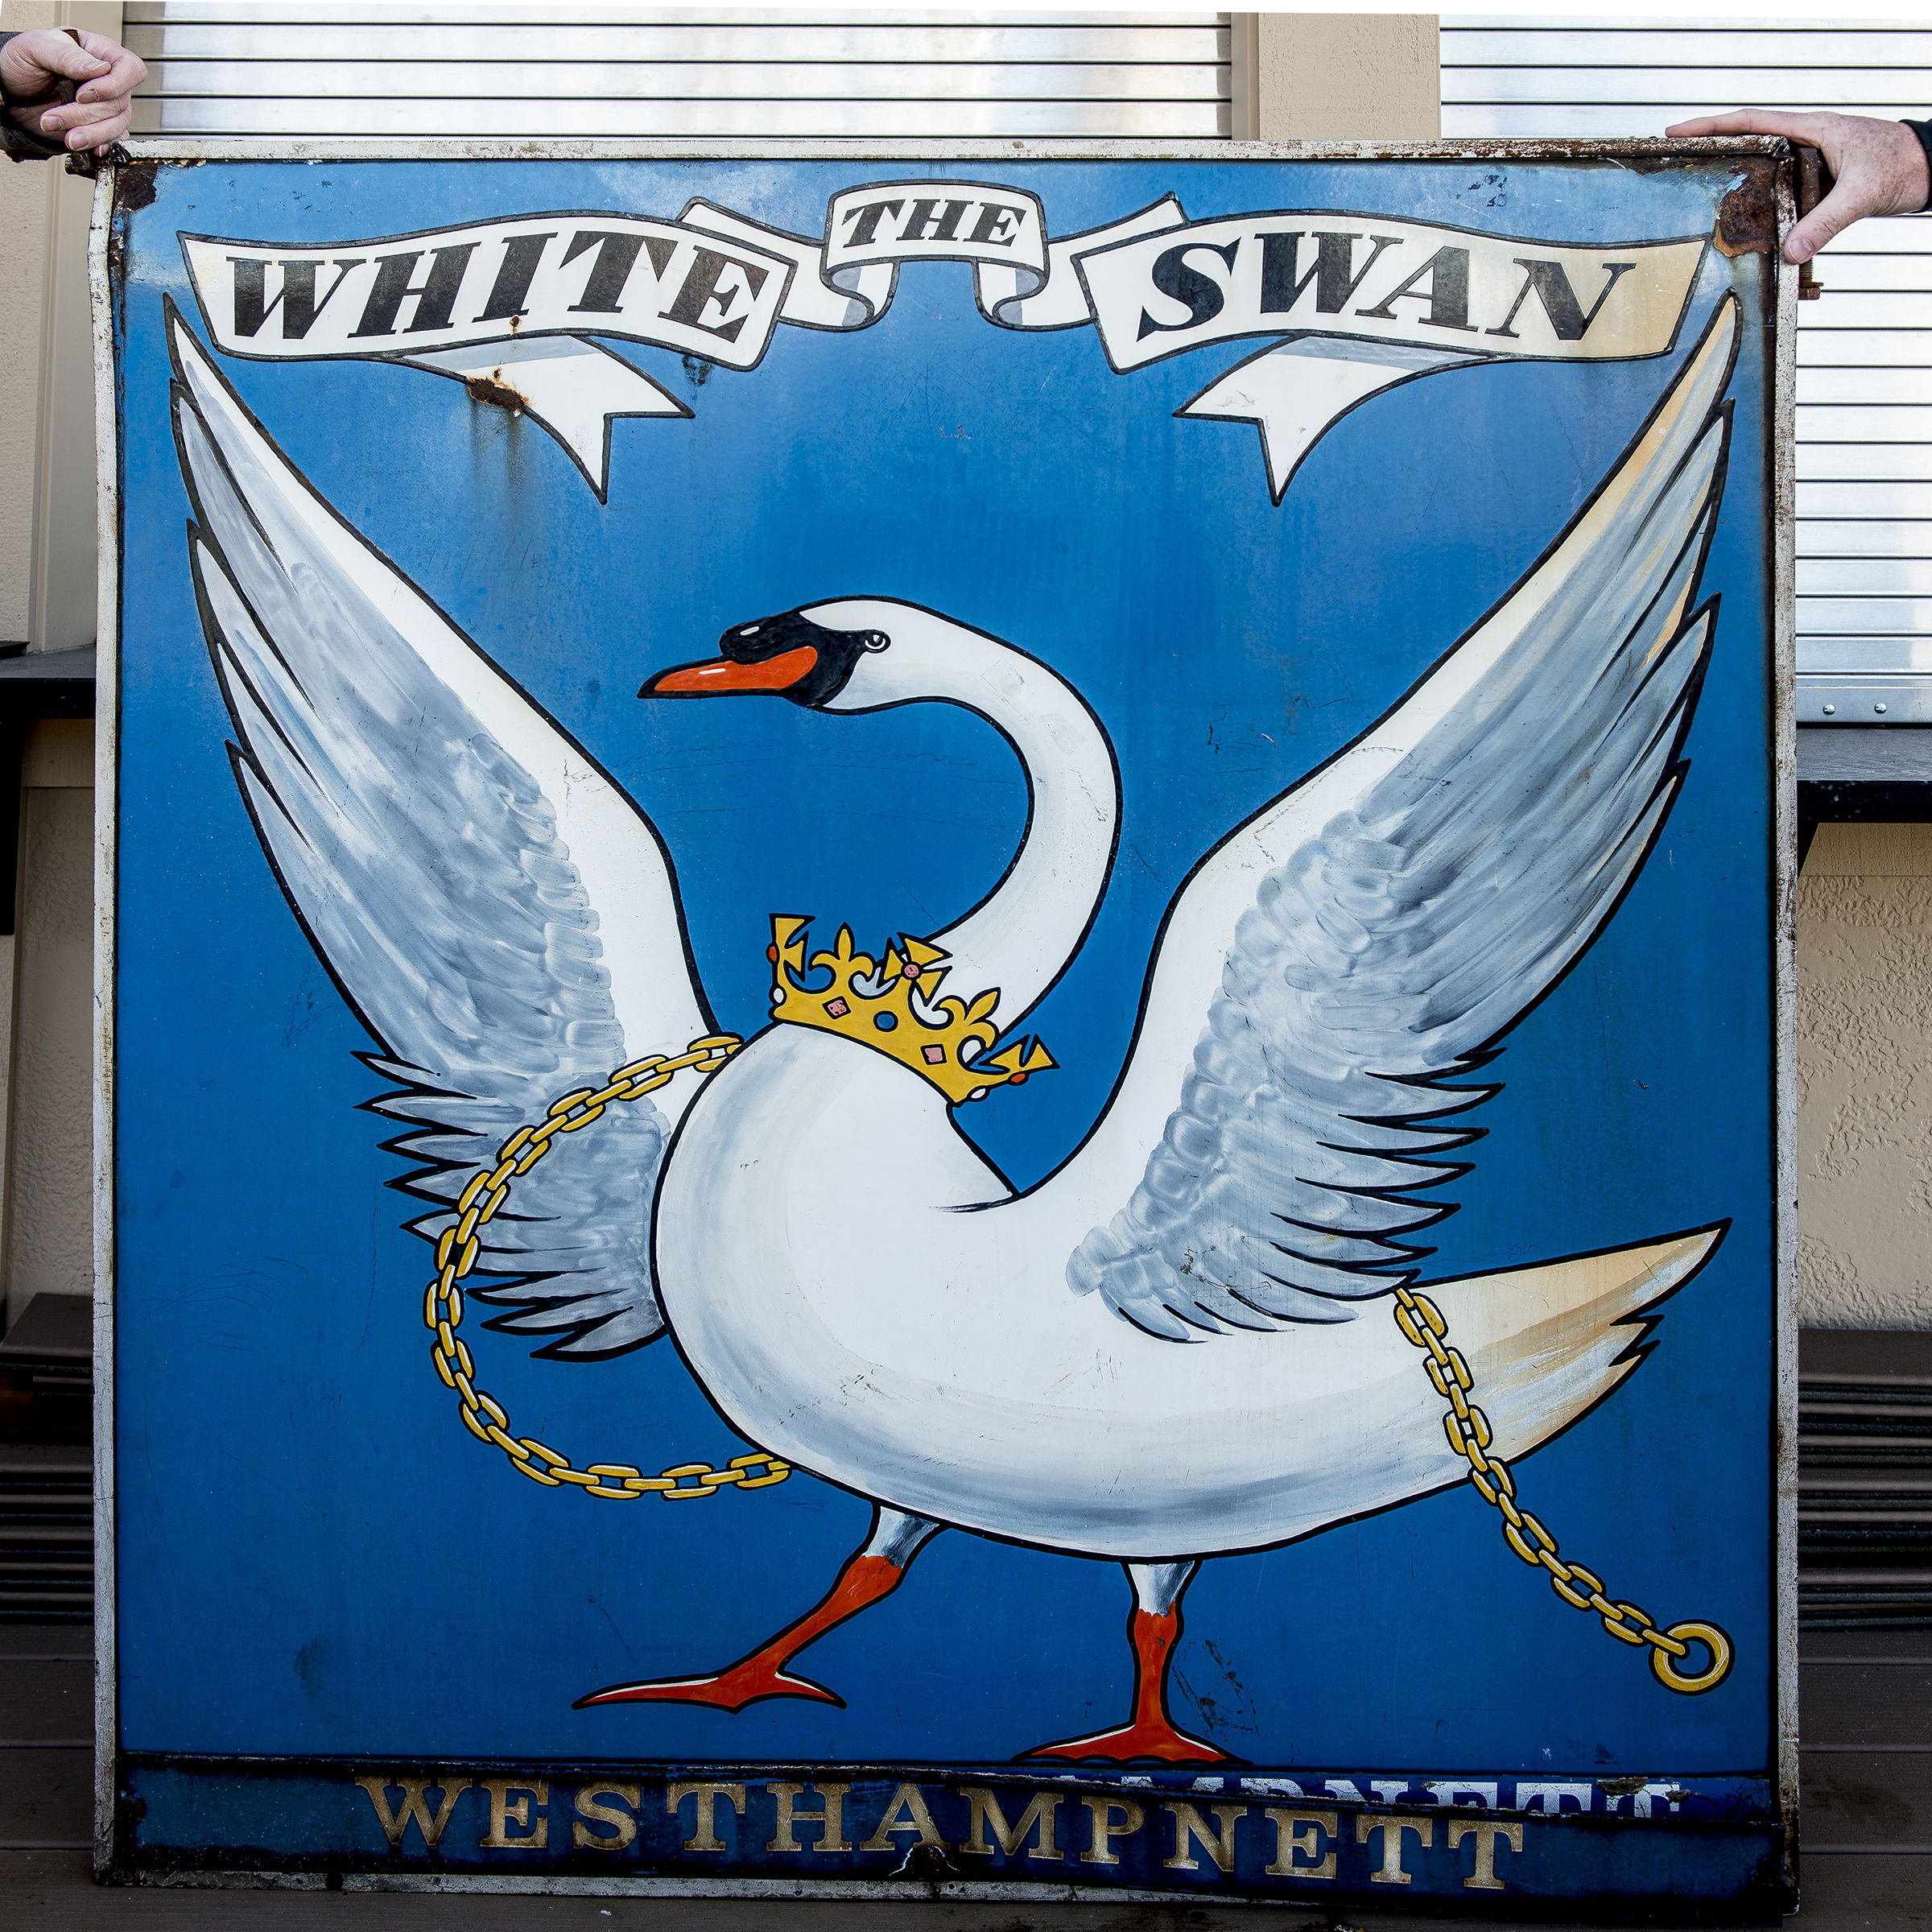 The white swan public house ufjlhj